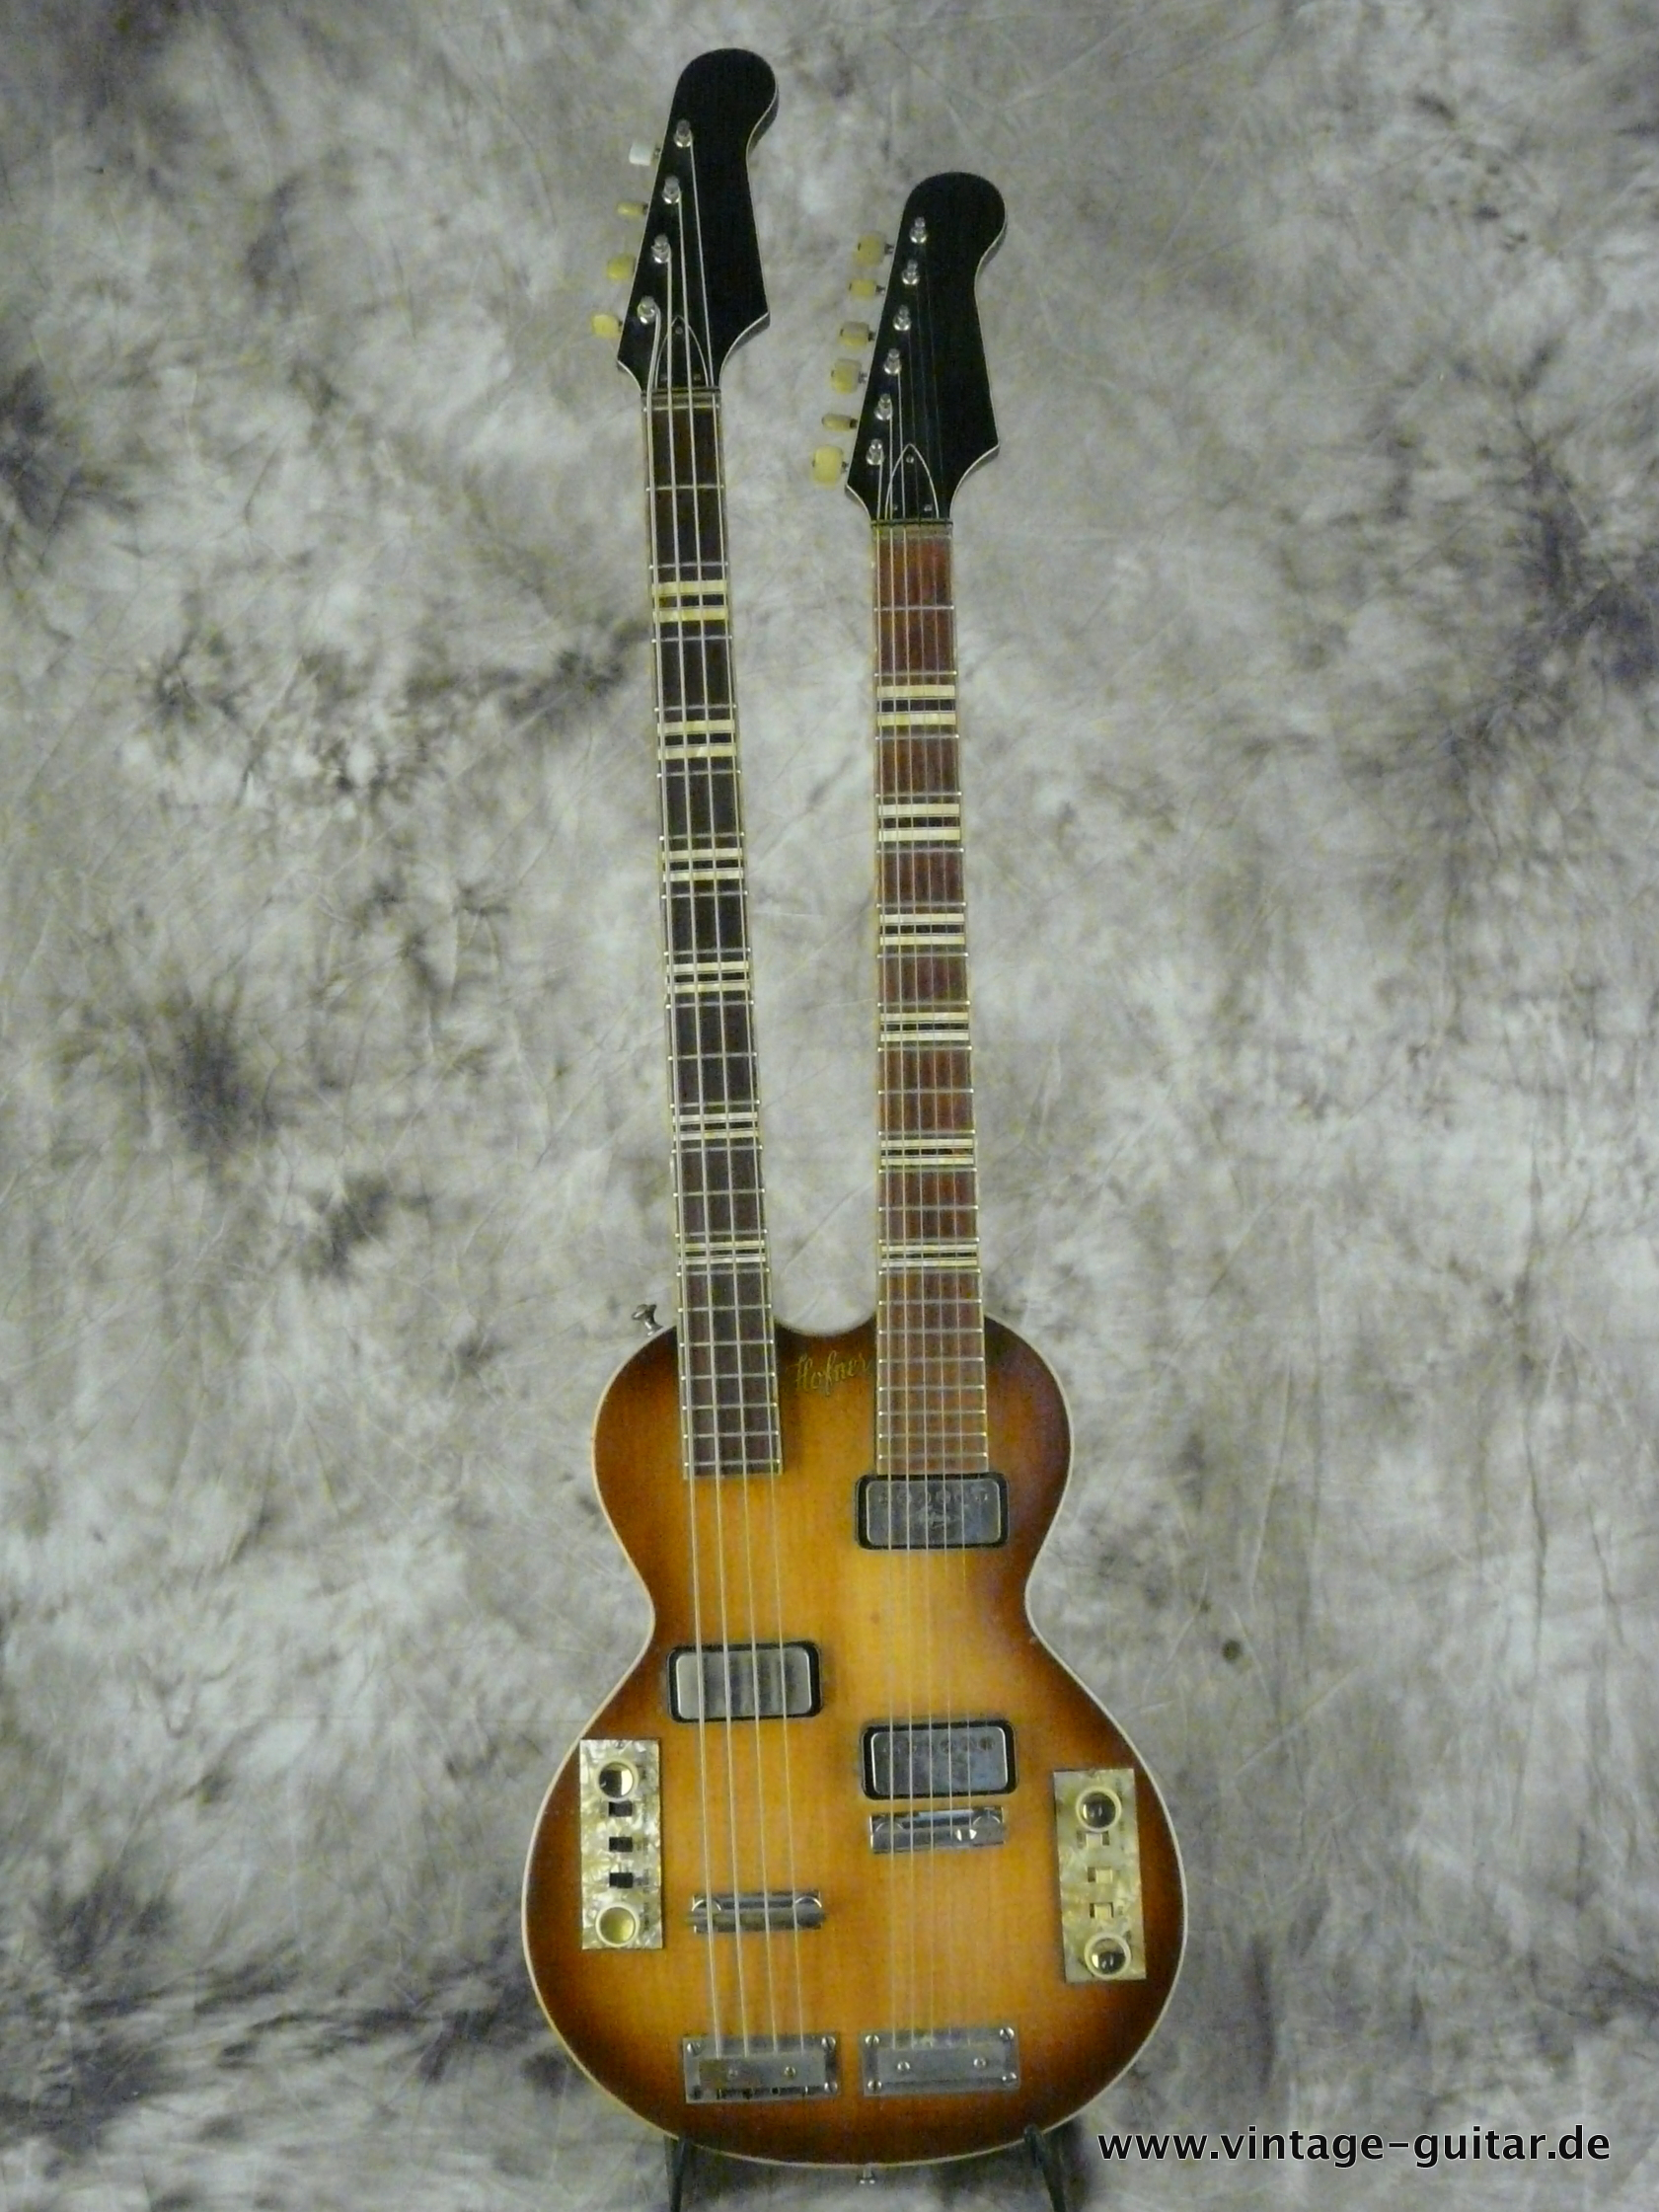 img/vintage/2648/Hofner-Double-Neck-Guitar-and-Bass-Model-191-001.JPG